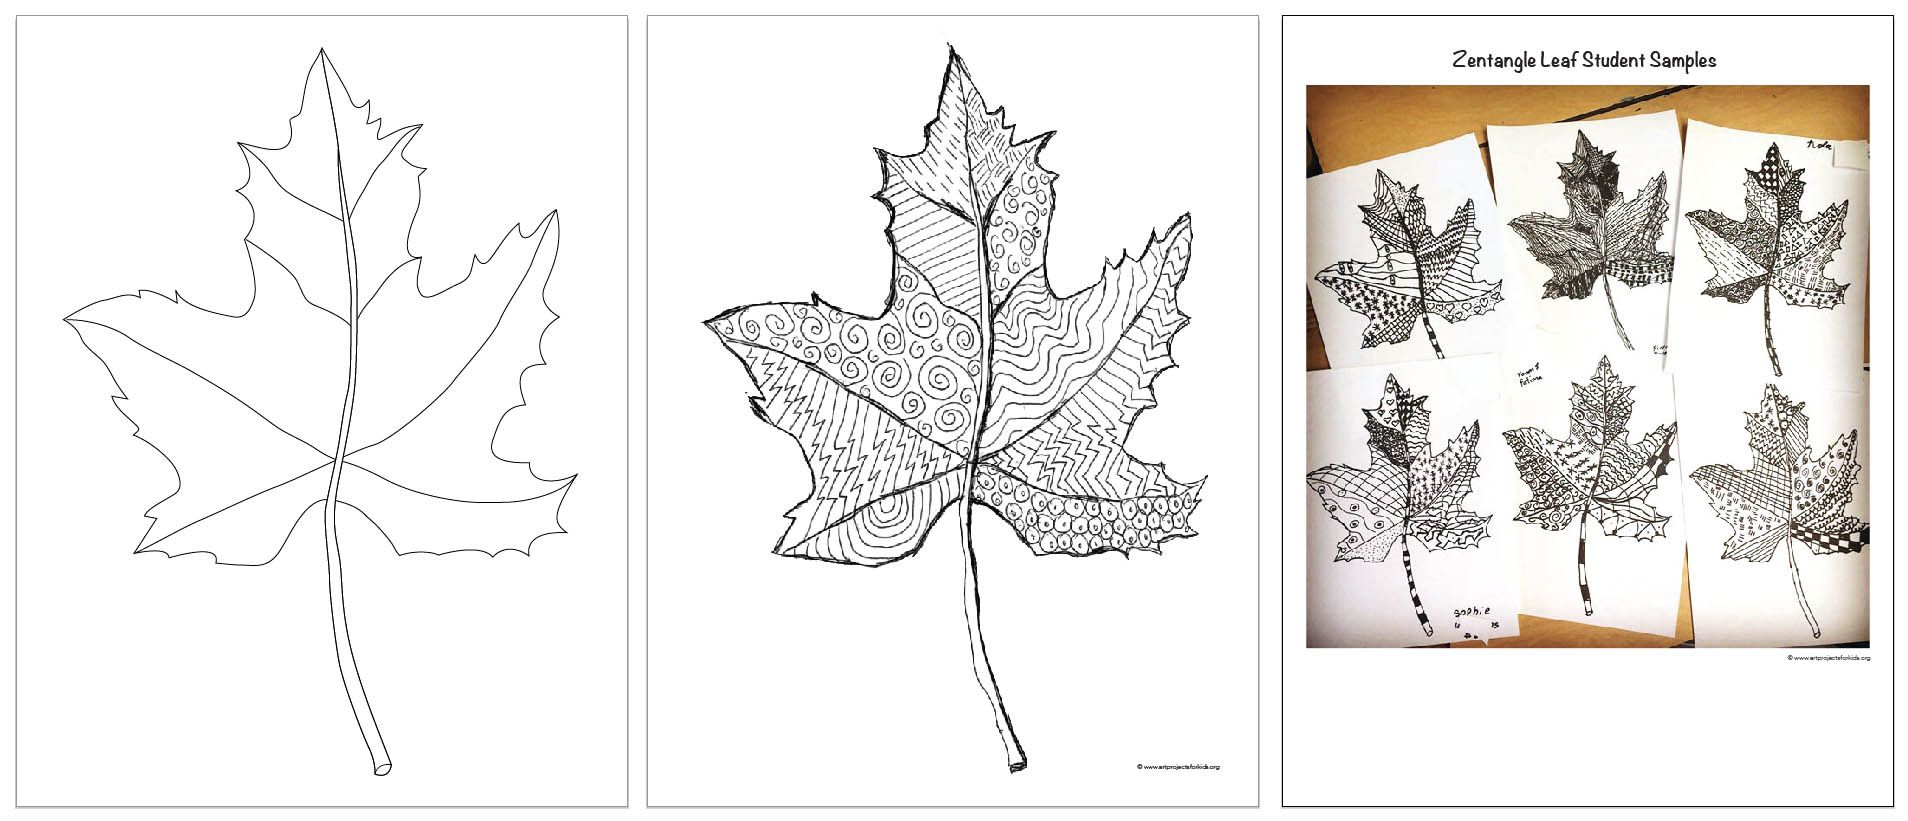 Zentangle Art Leaf Template Now With Finished Samples For Busy